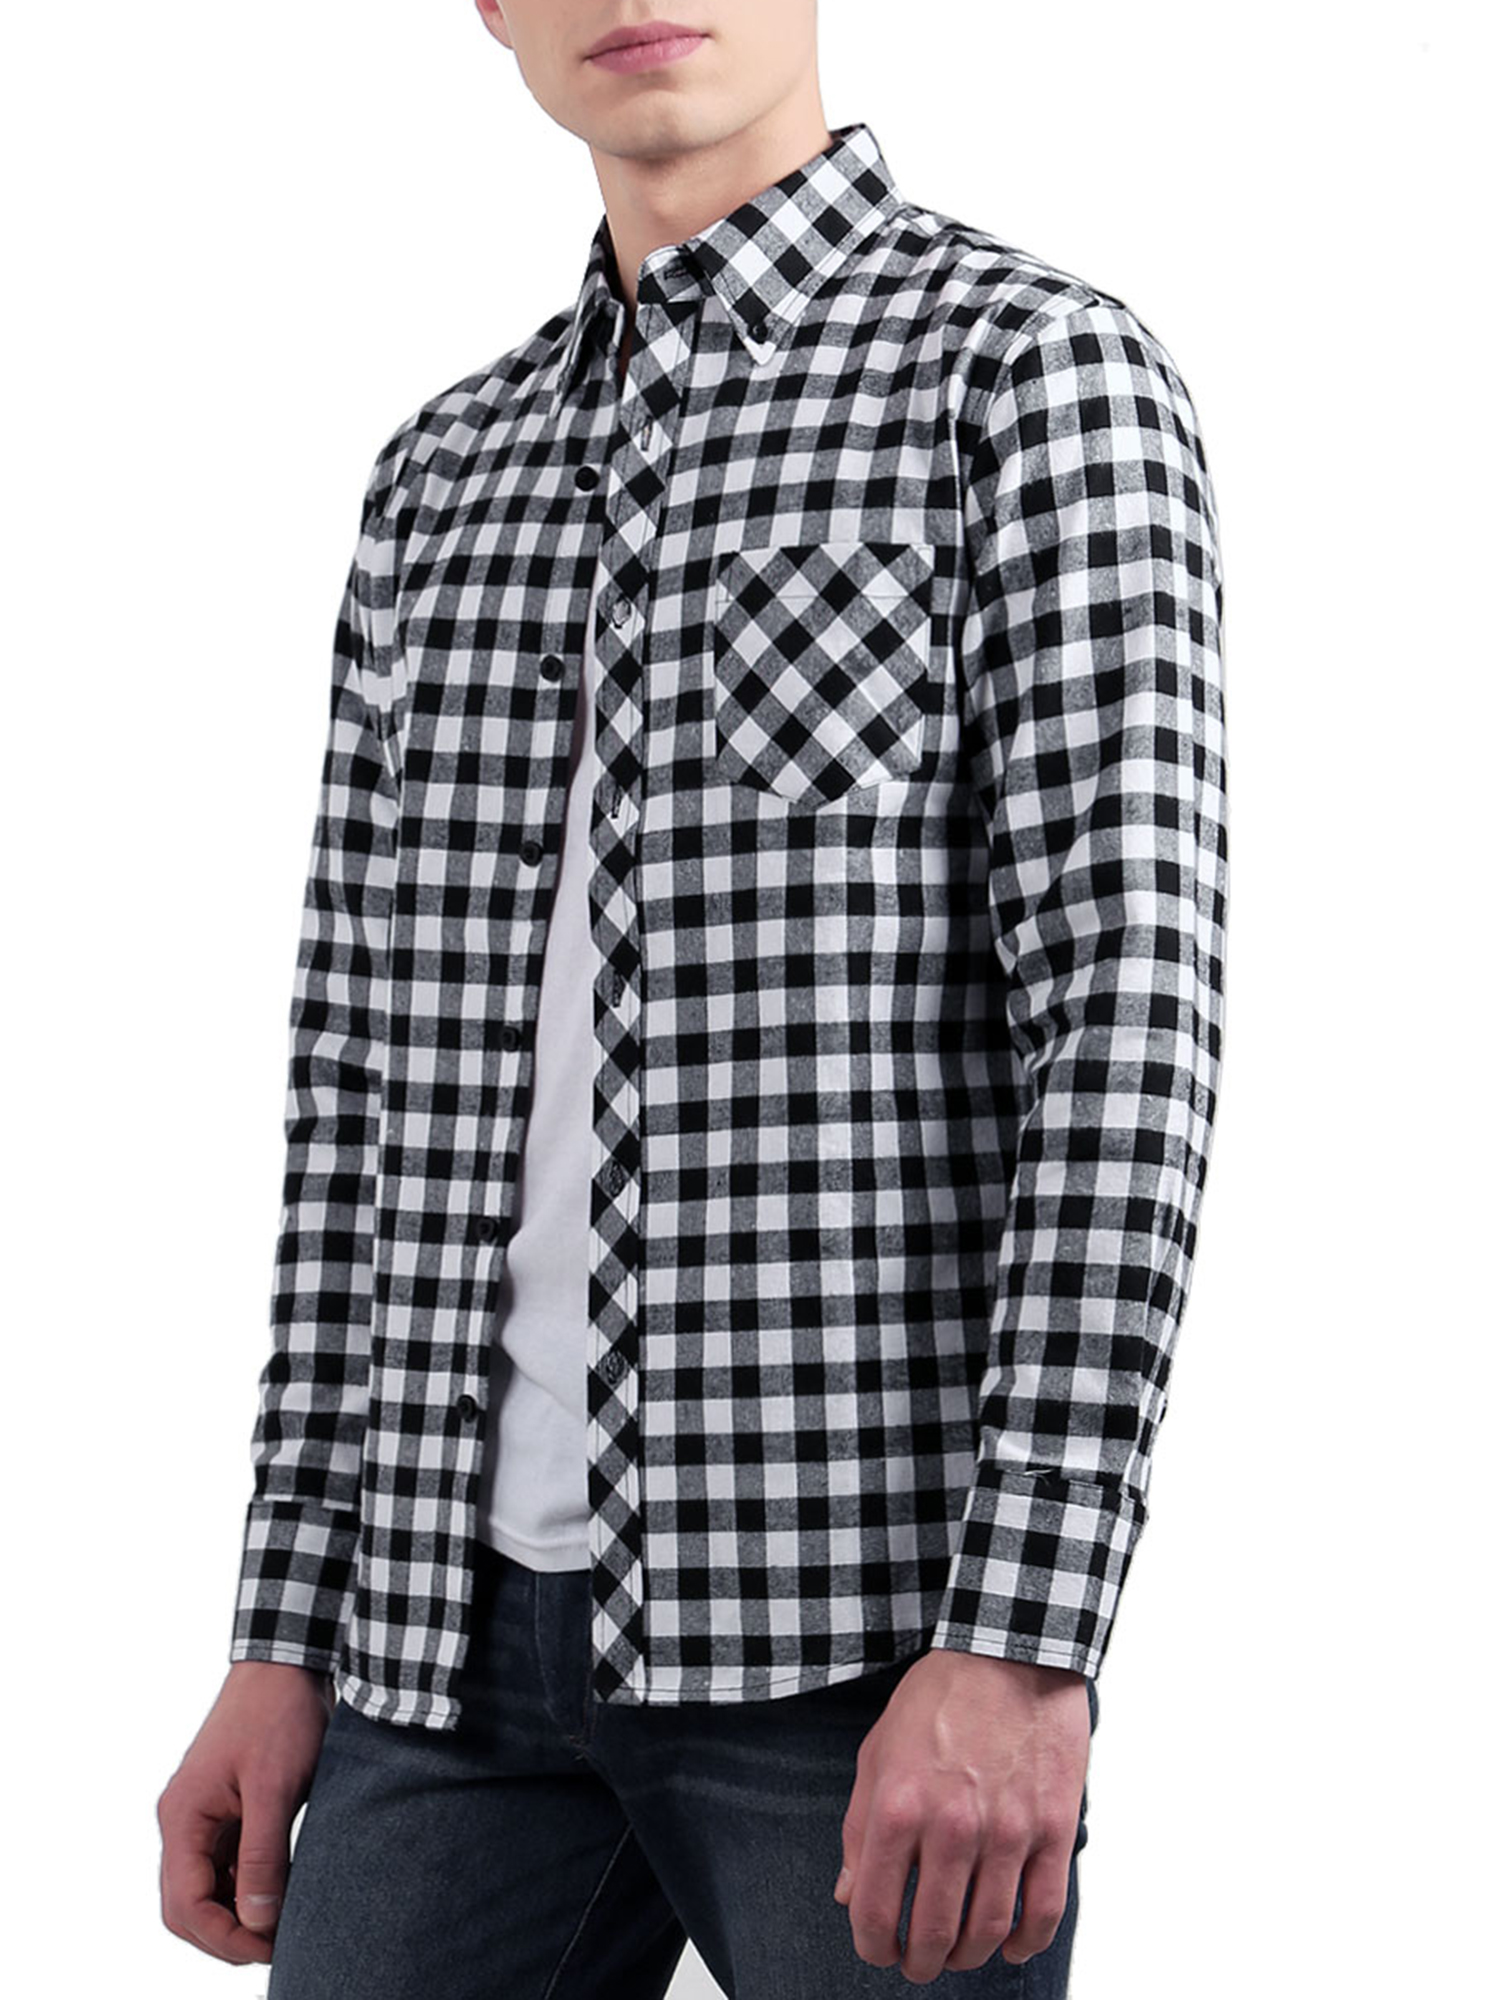 Men Point Collar Pocket Plaids Fannel Long Sleeves Button Down Shirt Black White S